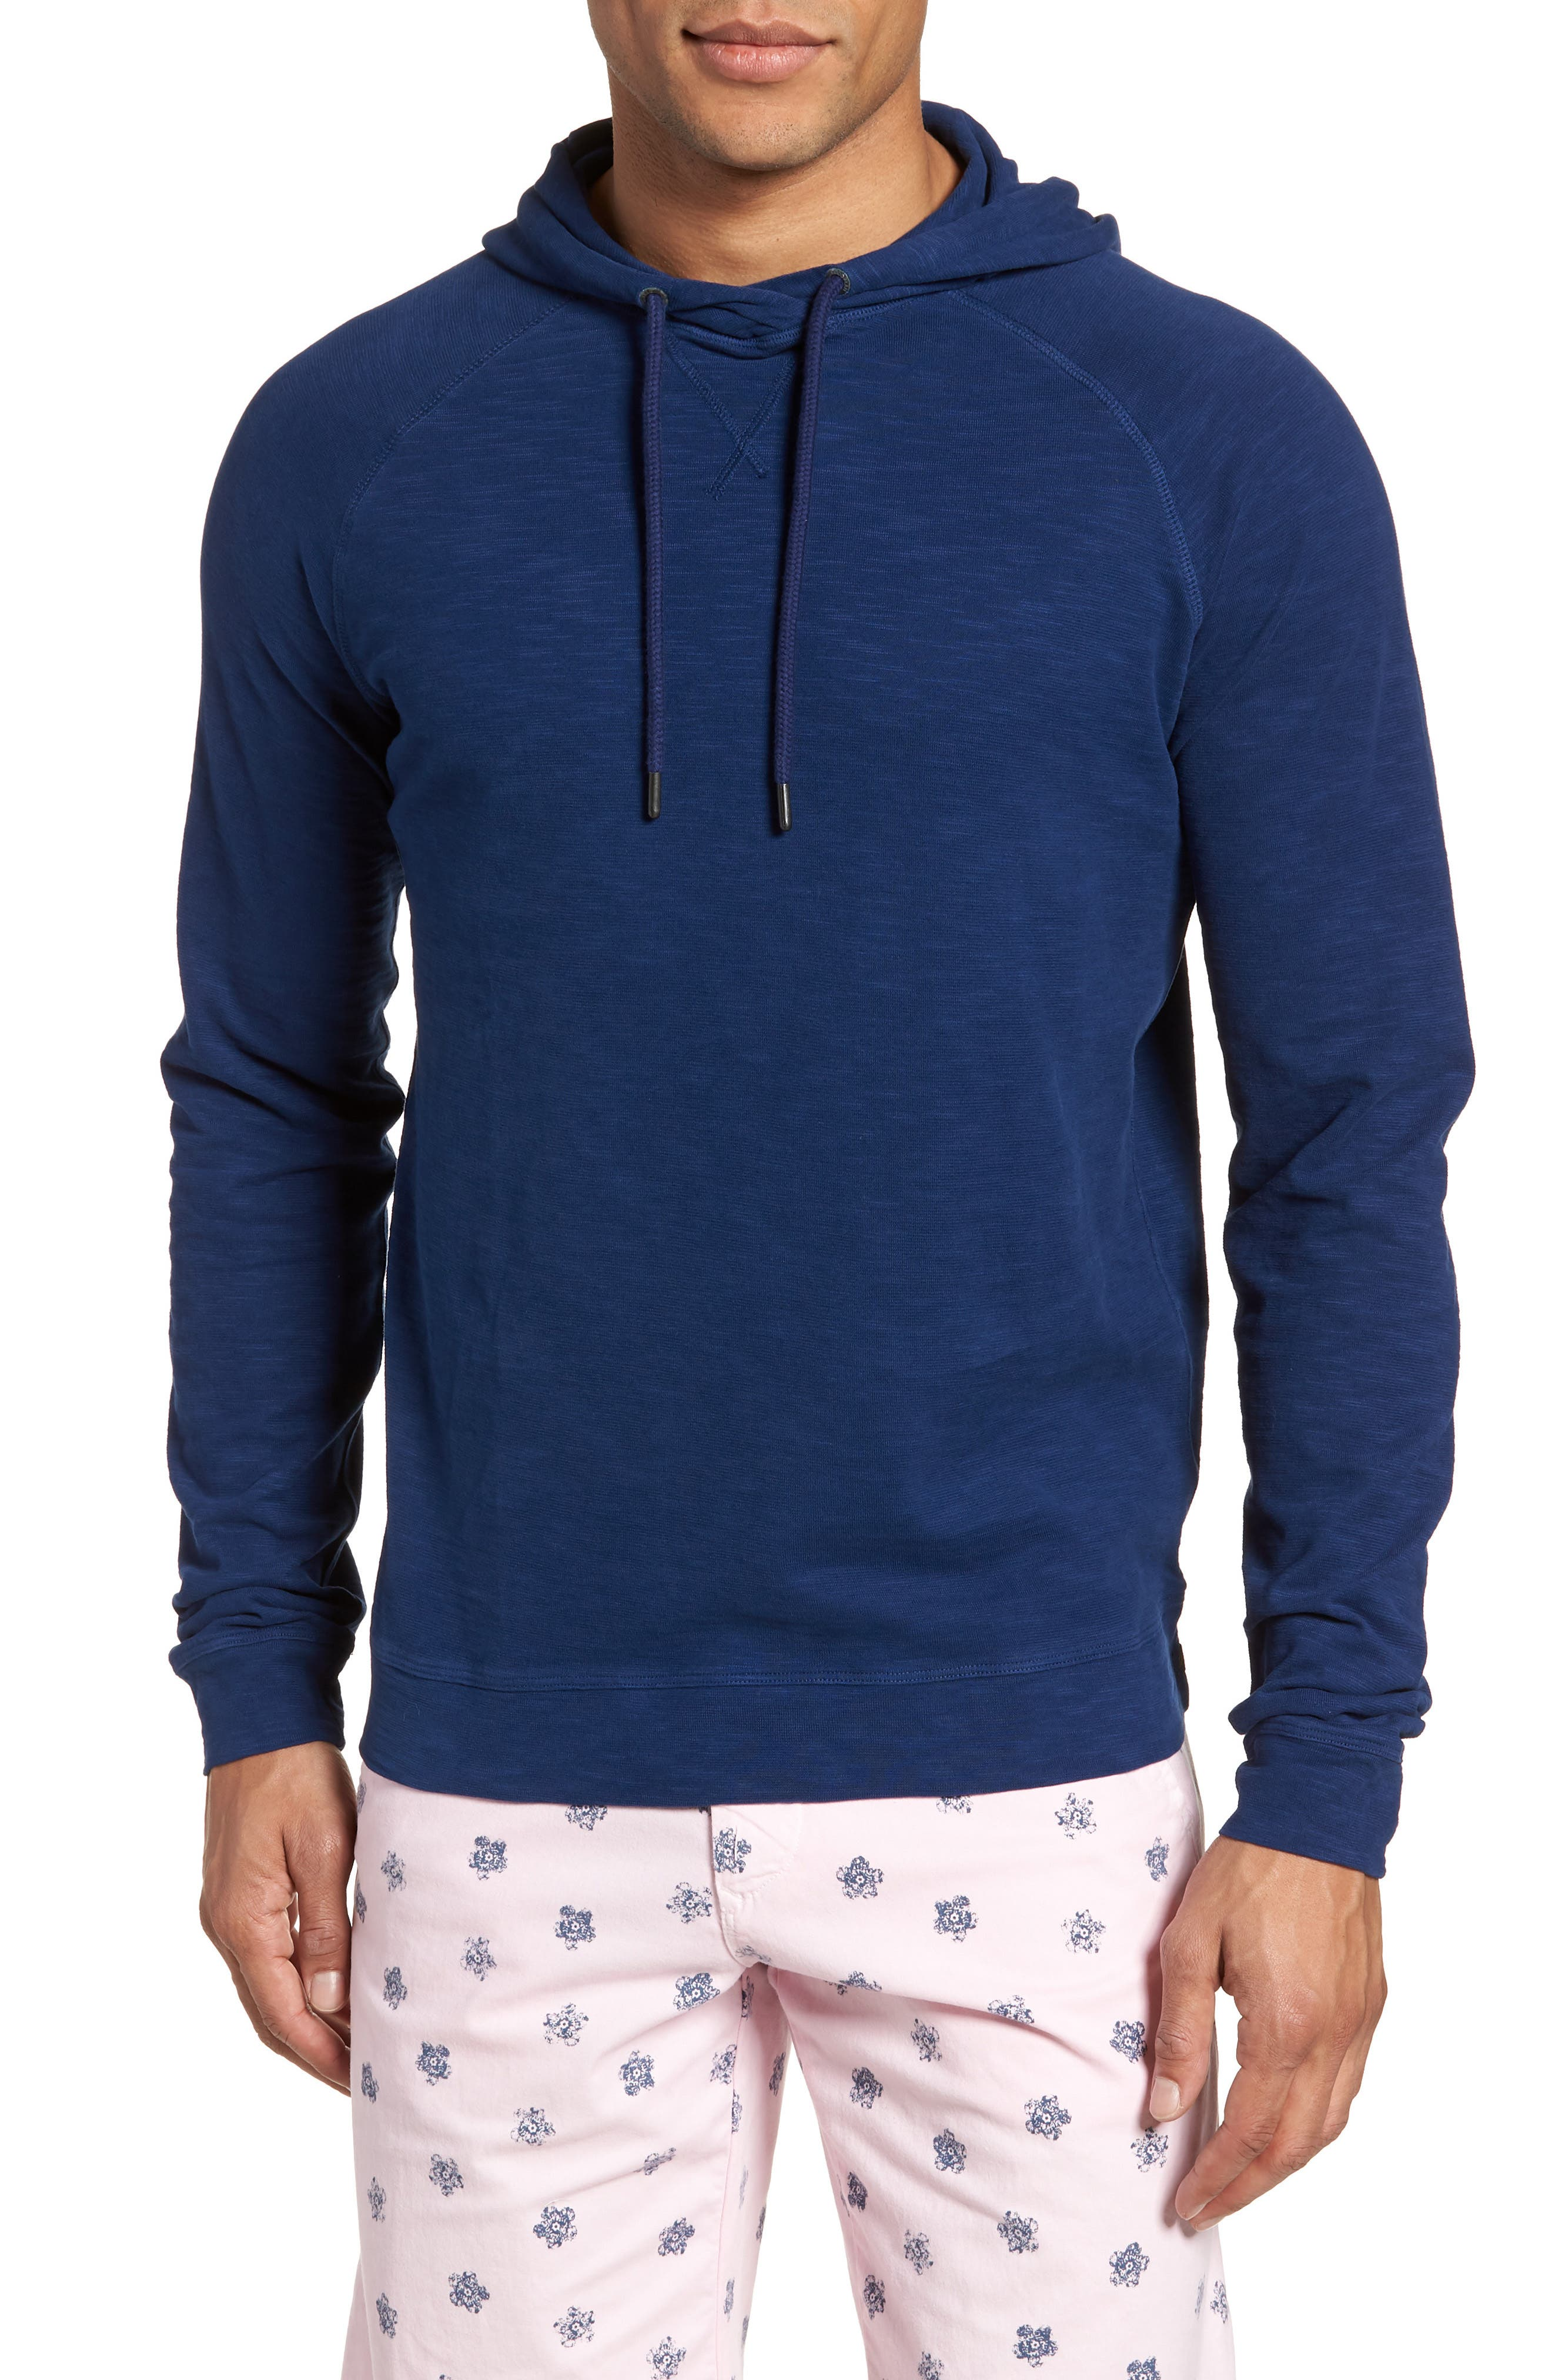 Trim Fit Pullover Hoodie,                         Main,                         color, Blue